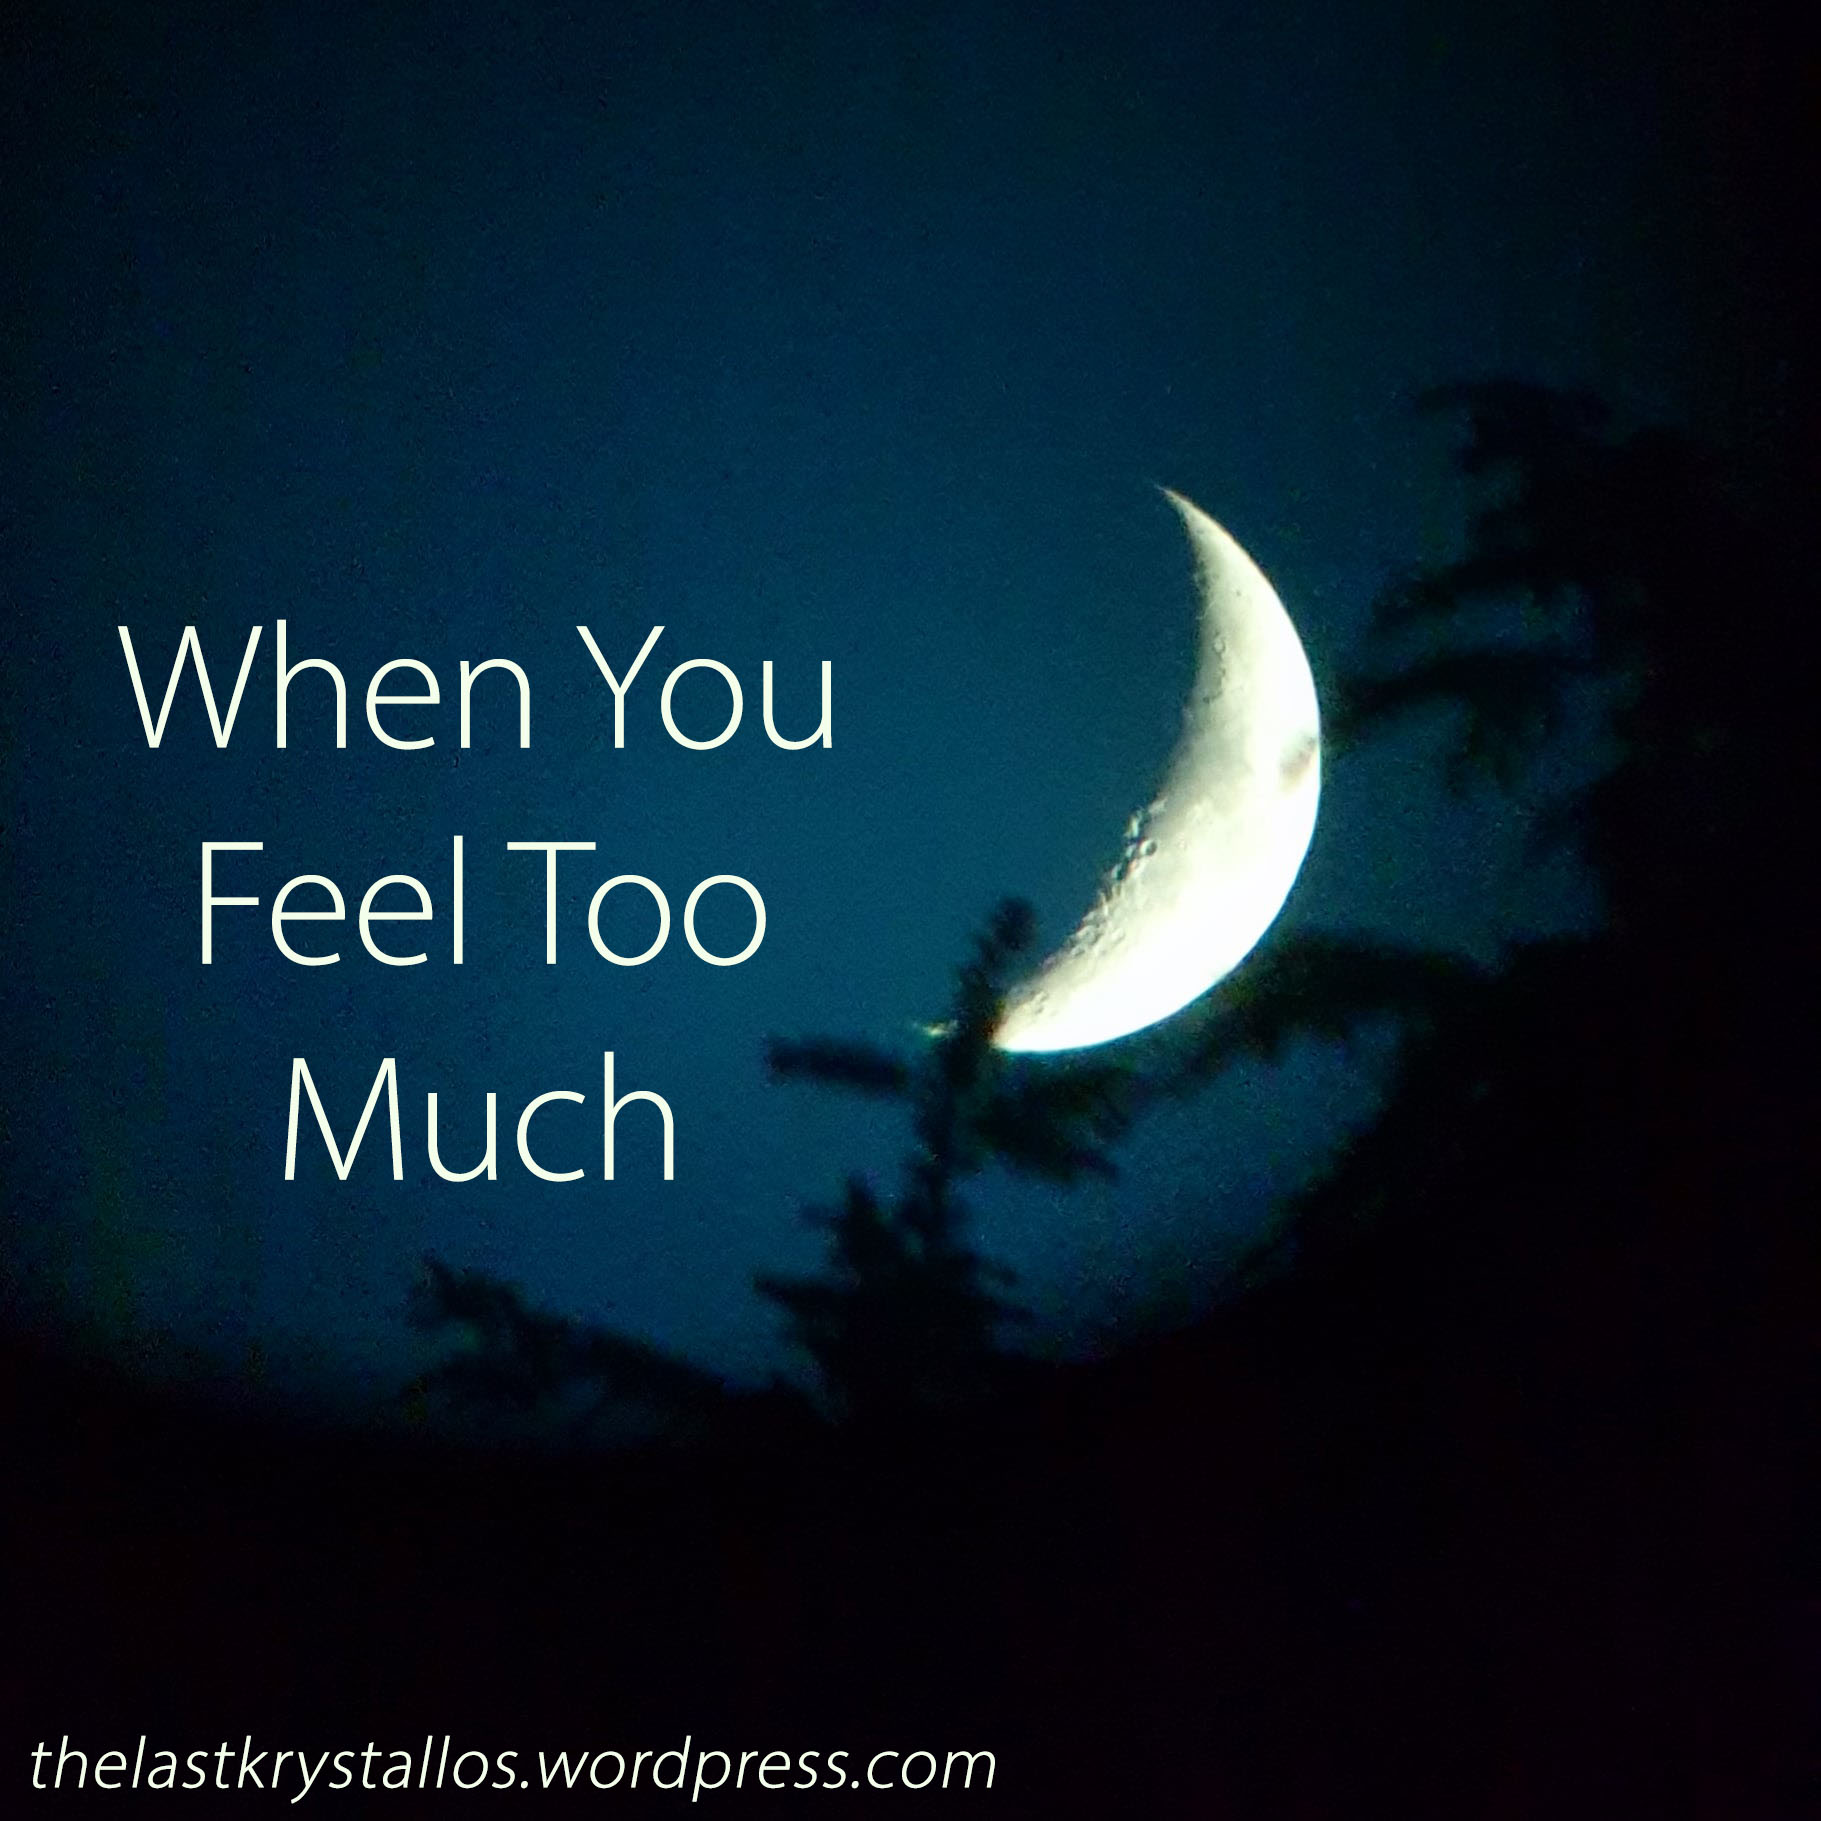 When You Feel Too Much - The Last Krystallos